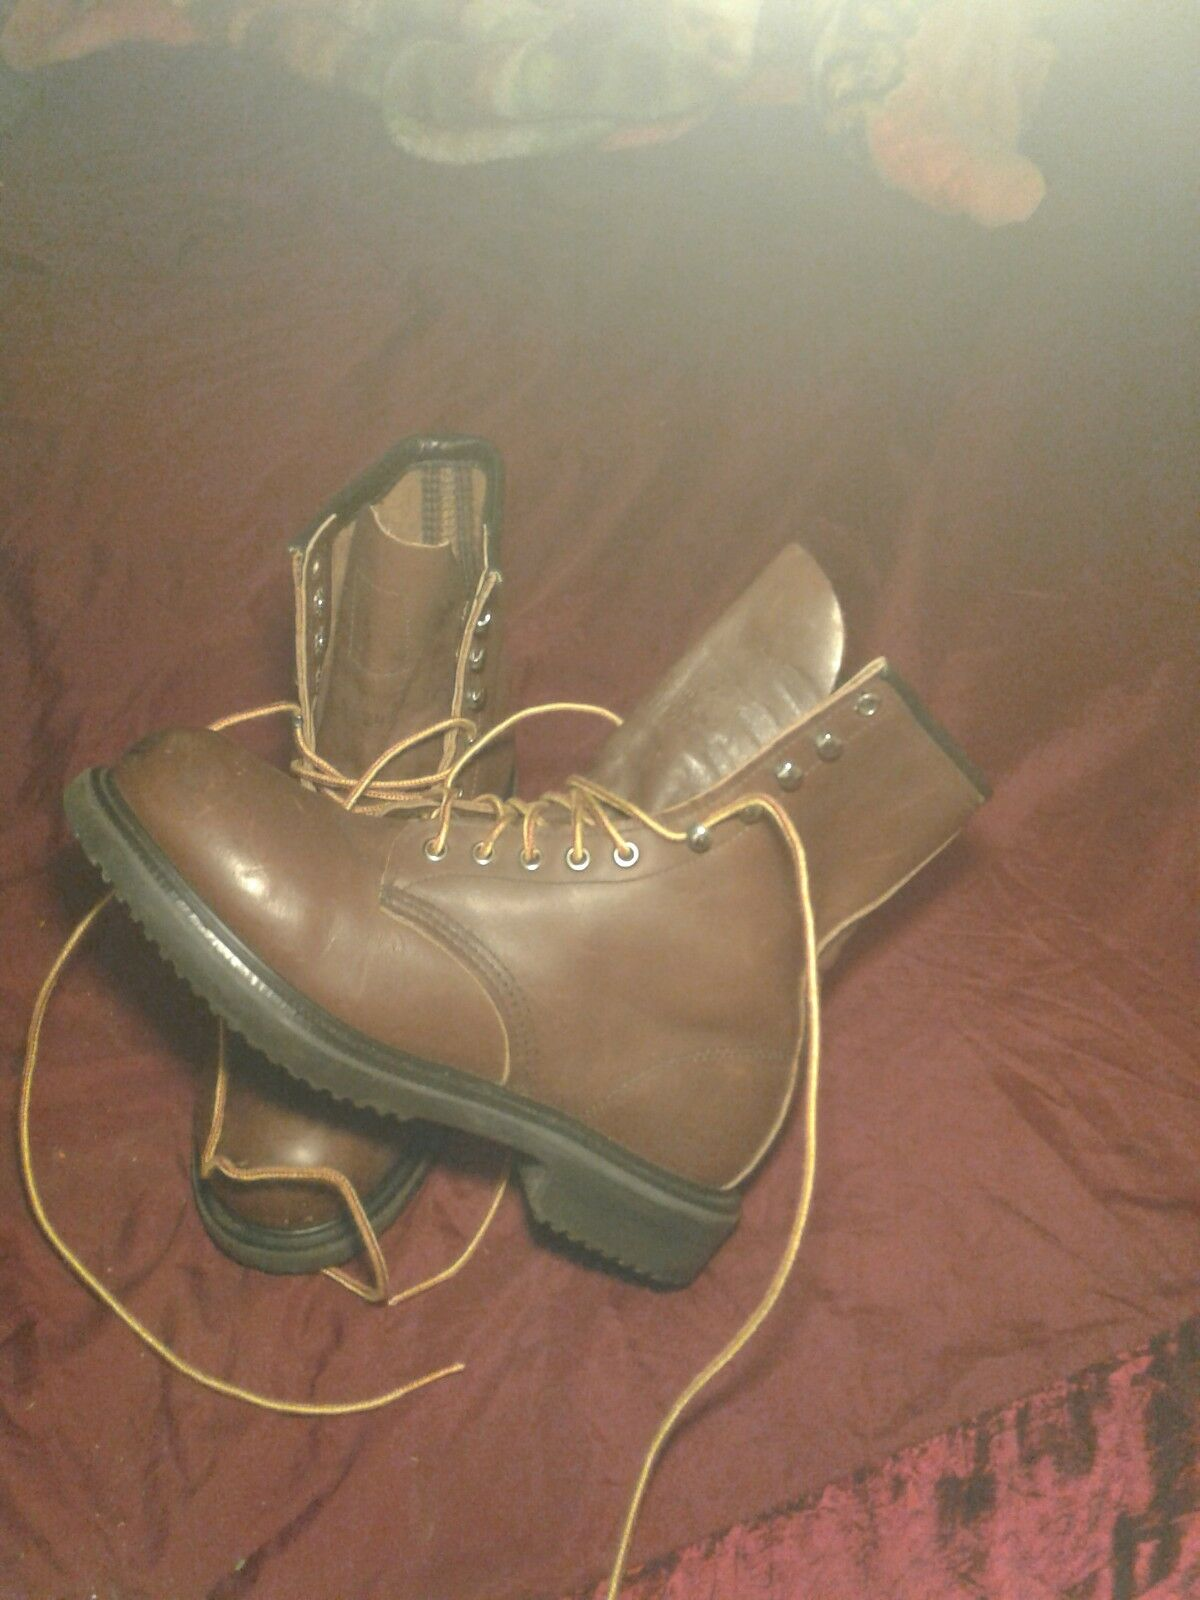 VTG RED WING BOOTS SIZE 6.5 WORK STEEL TOE CHUKKA BROWN COLOR USA MADE